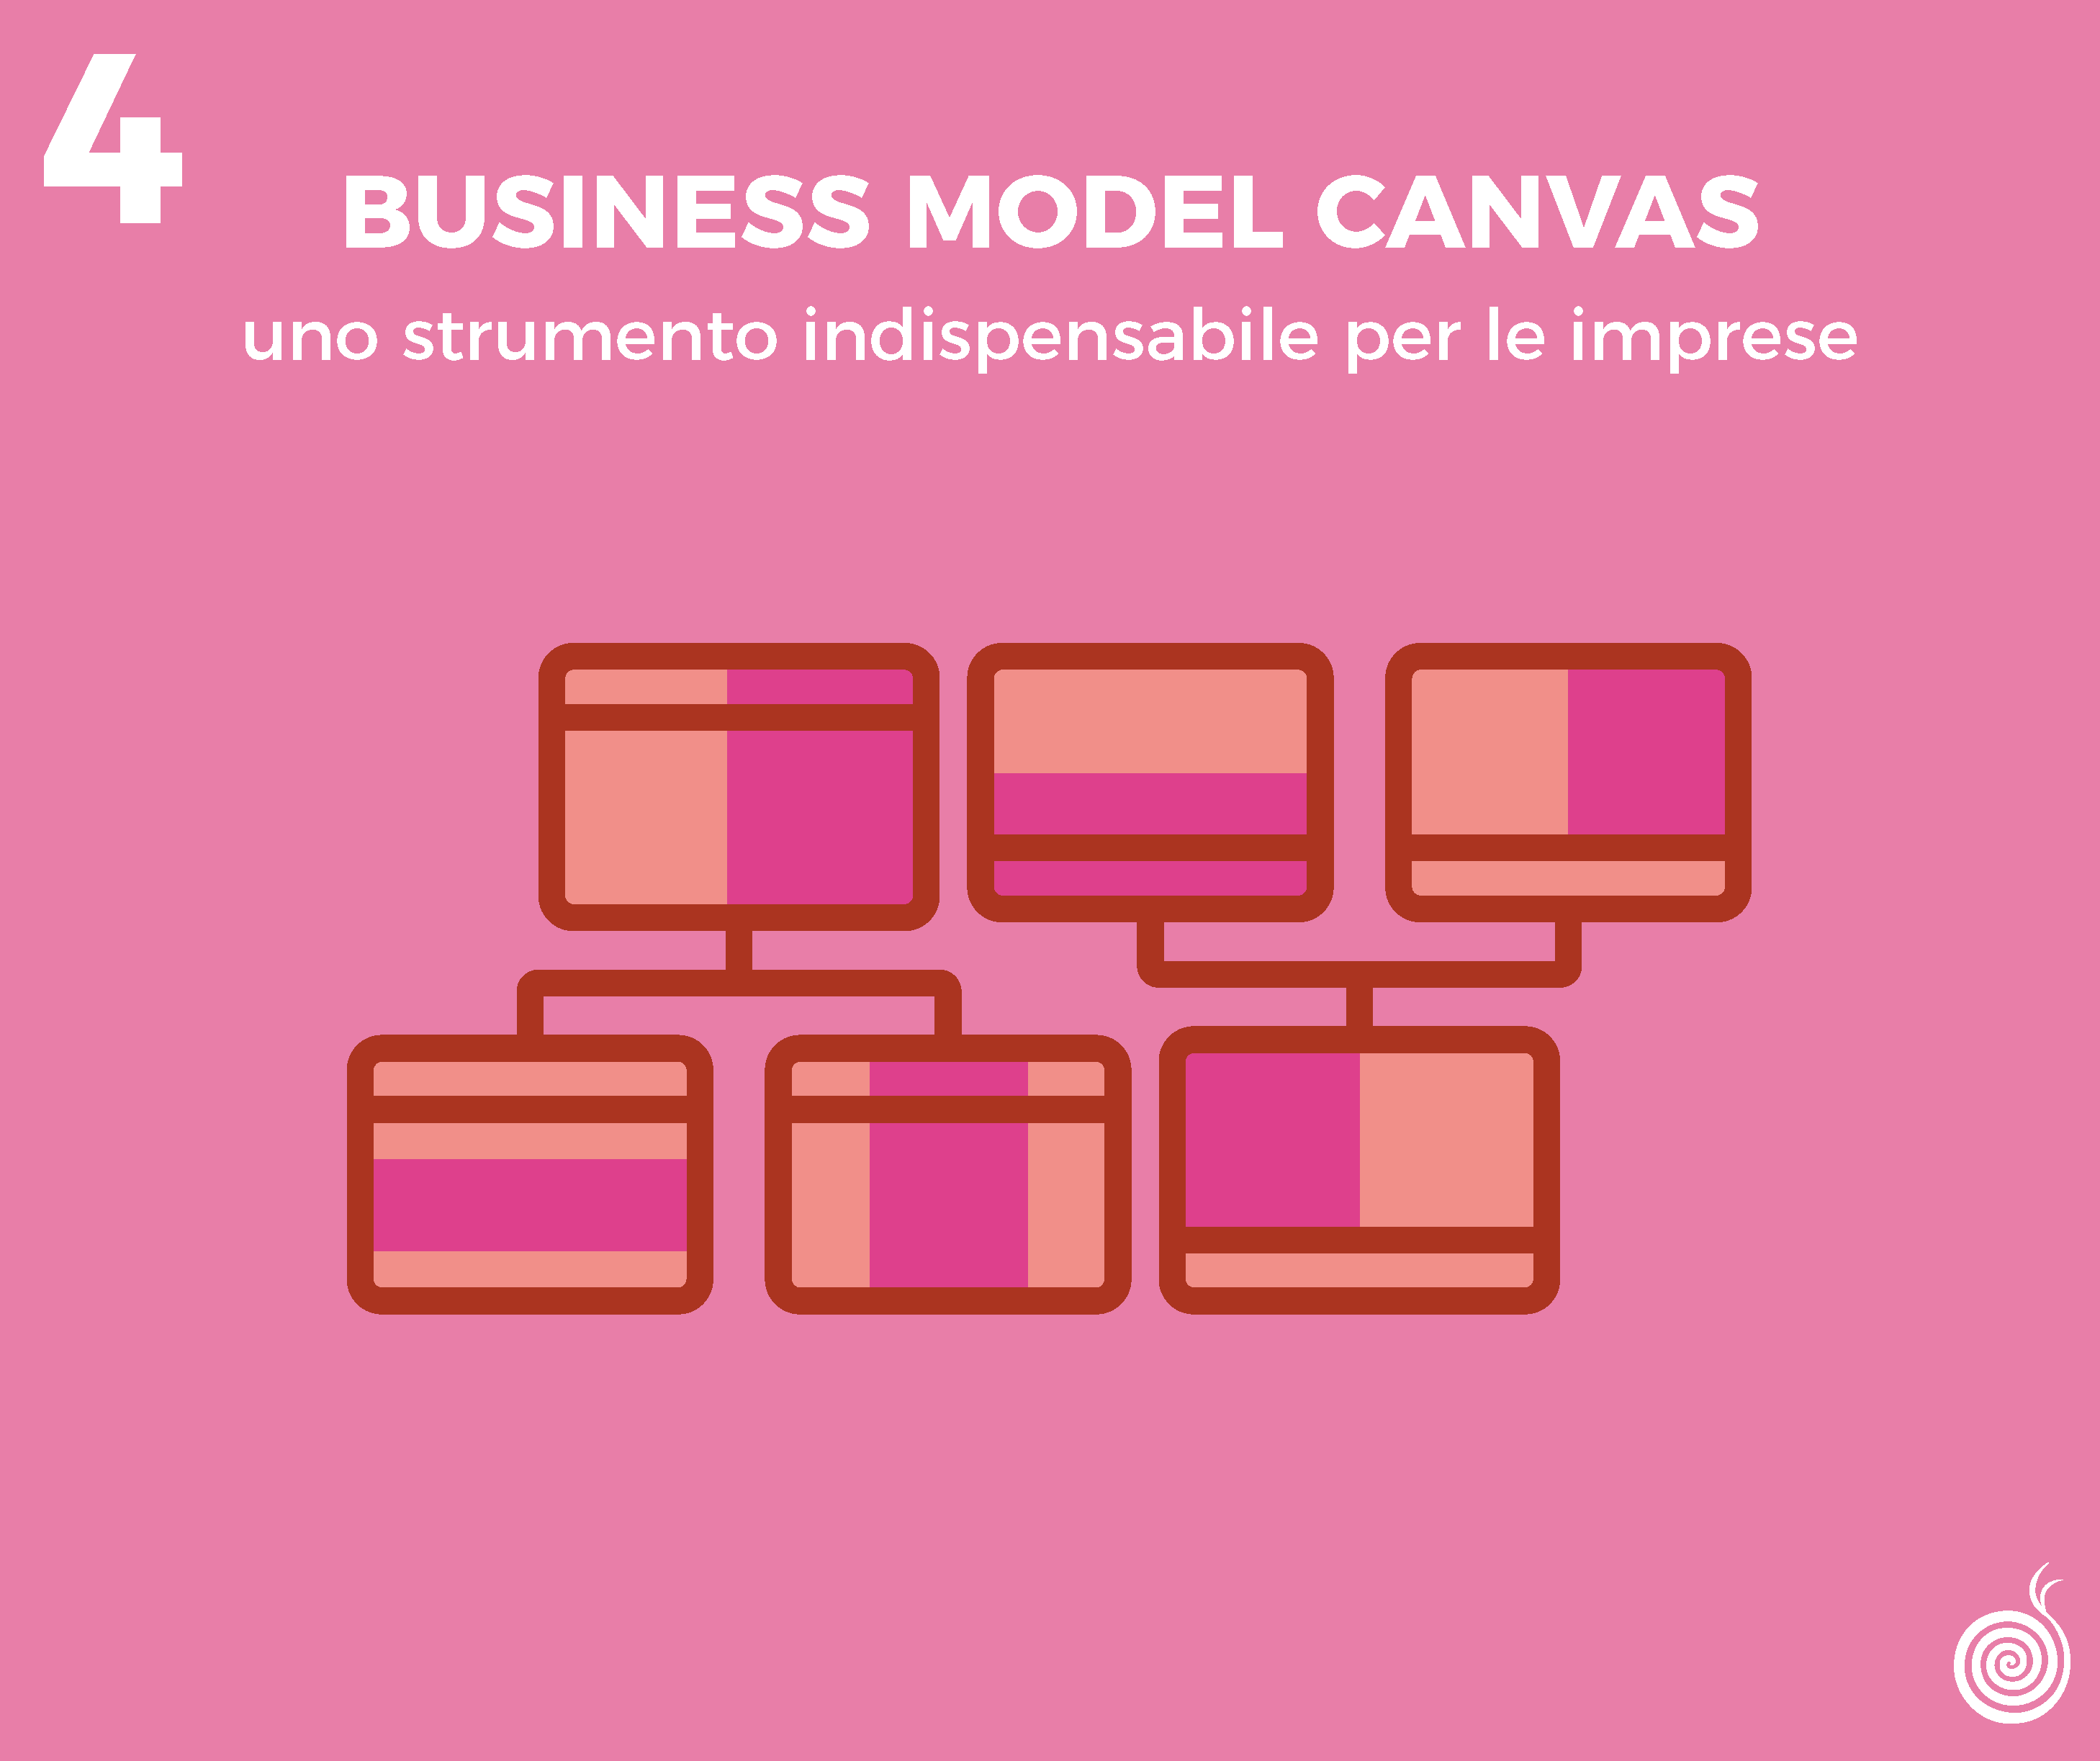 Business Model Canvas: uno strumento indispensabile per le imprese